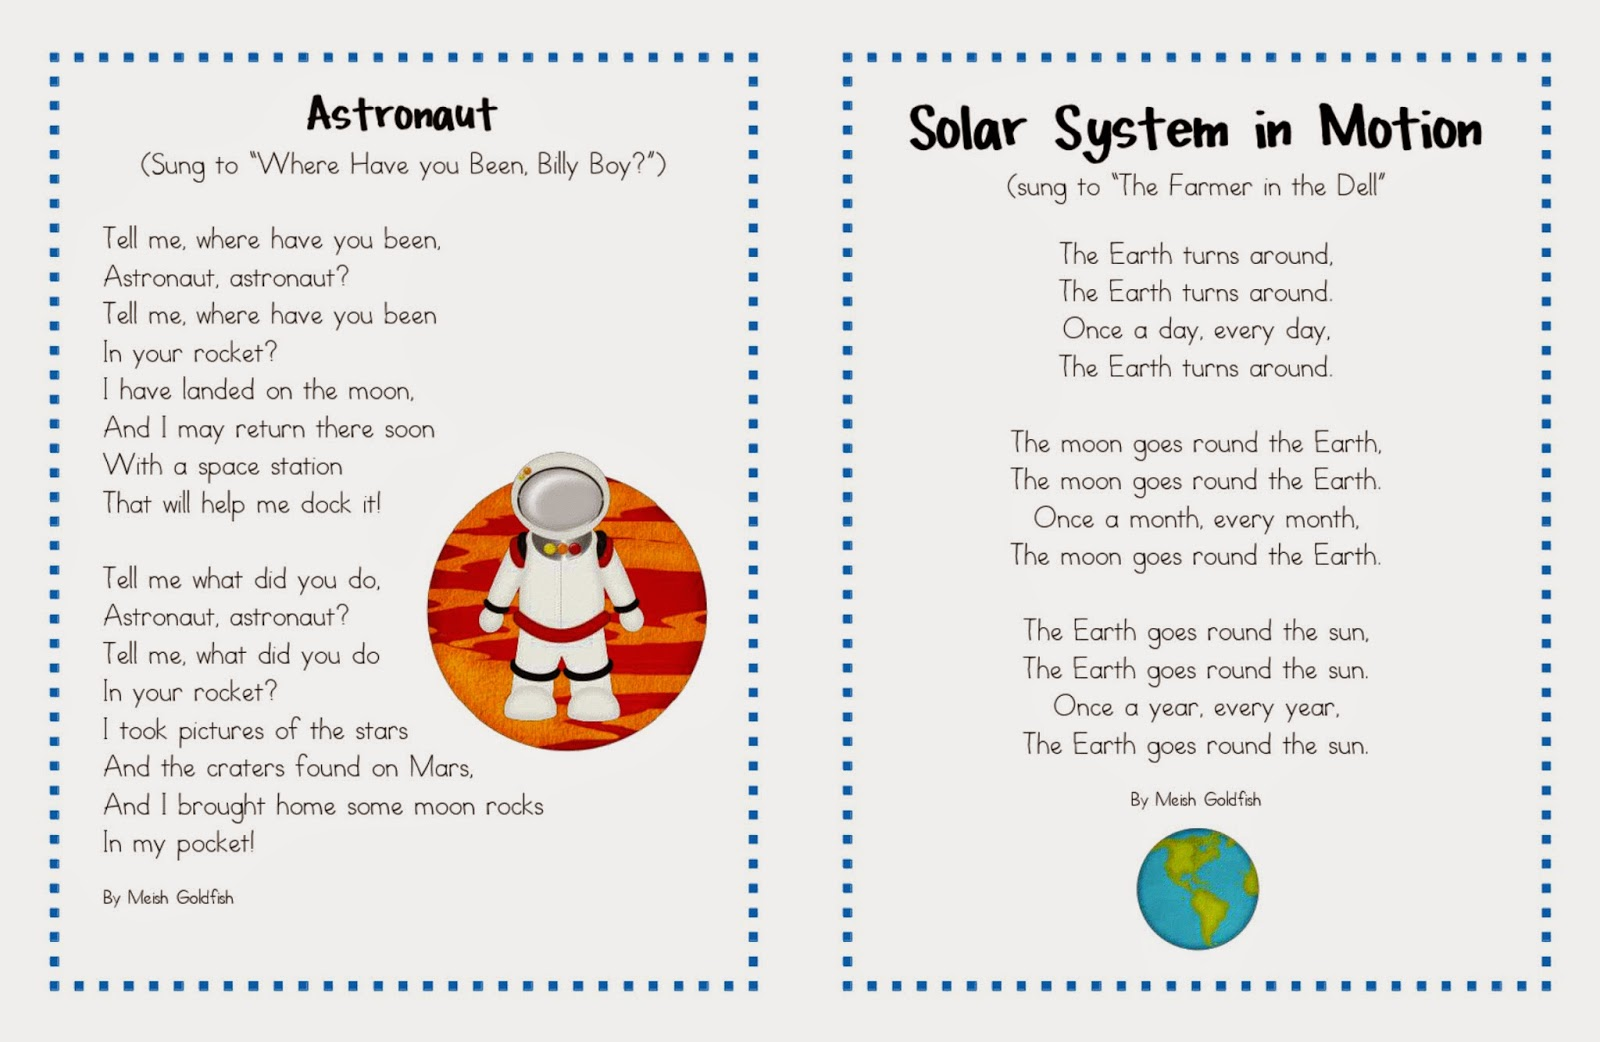 mars solar system song - photo #35